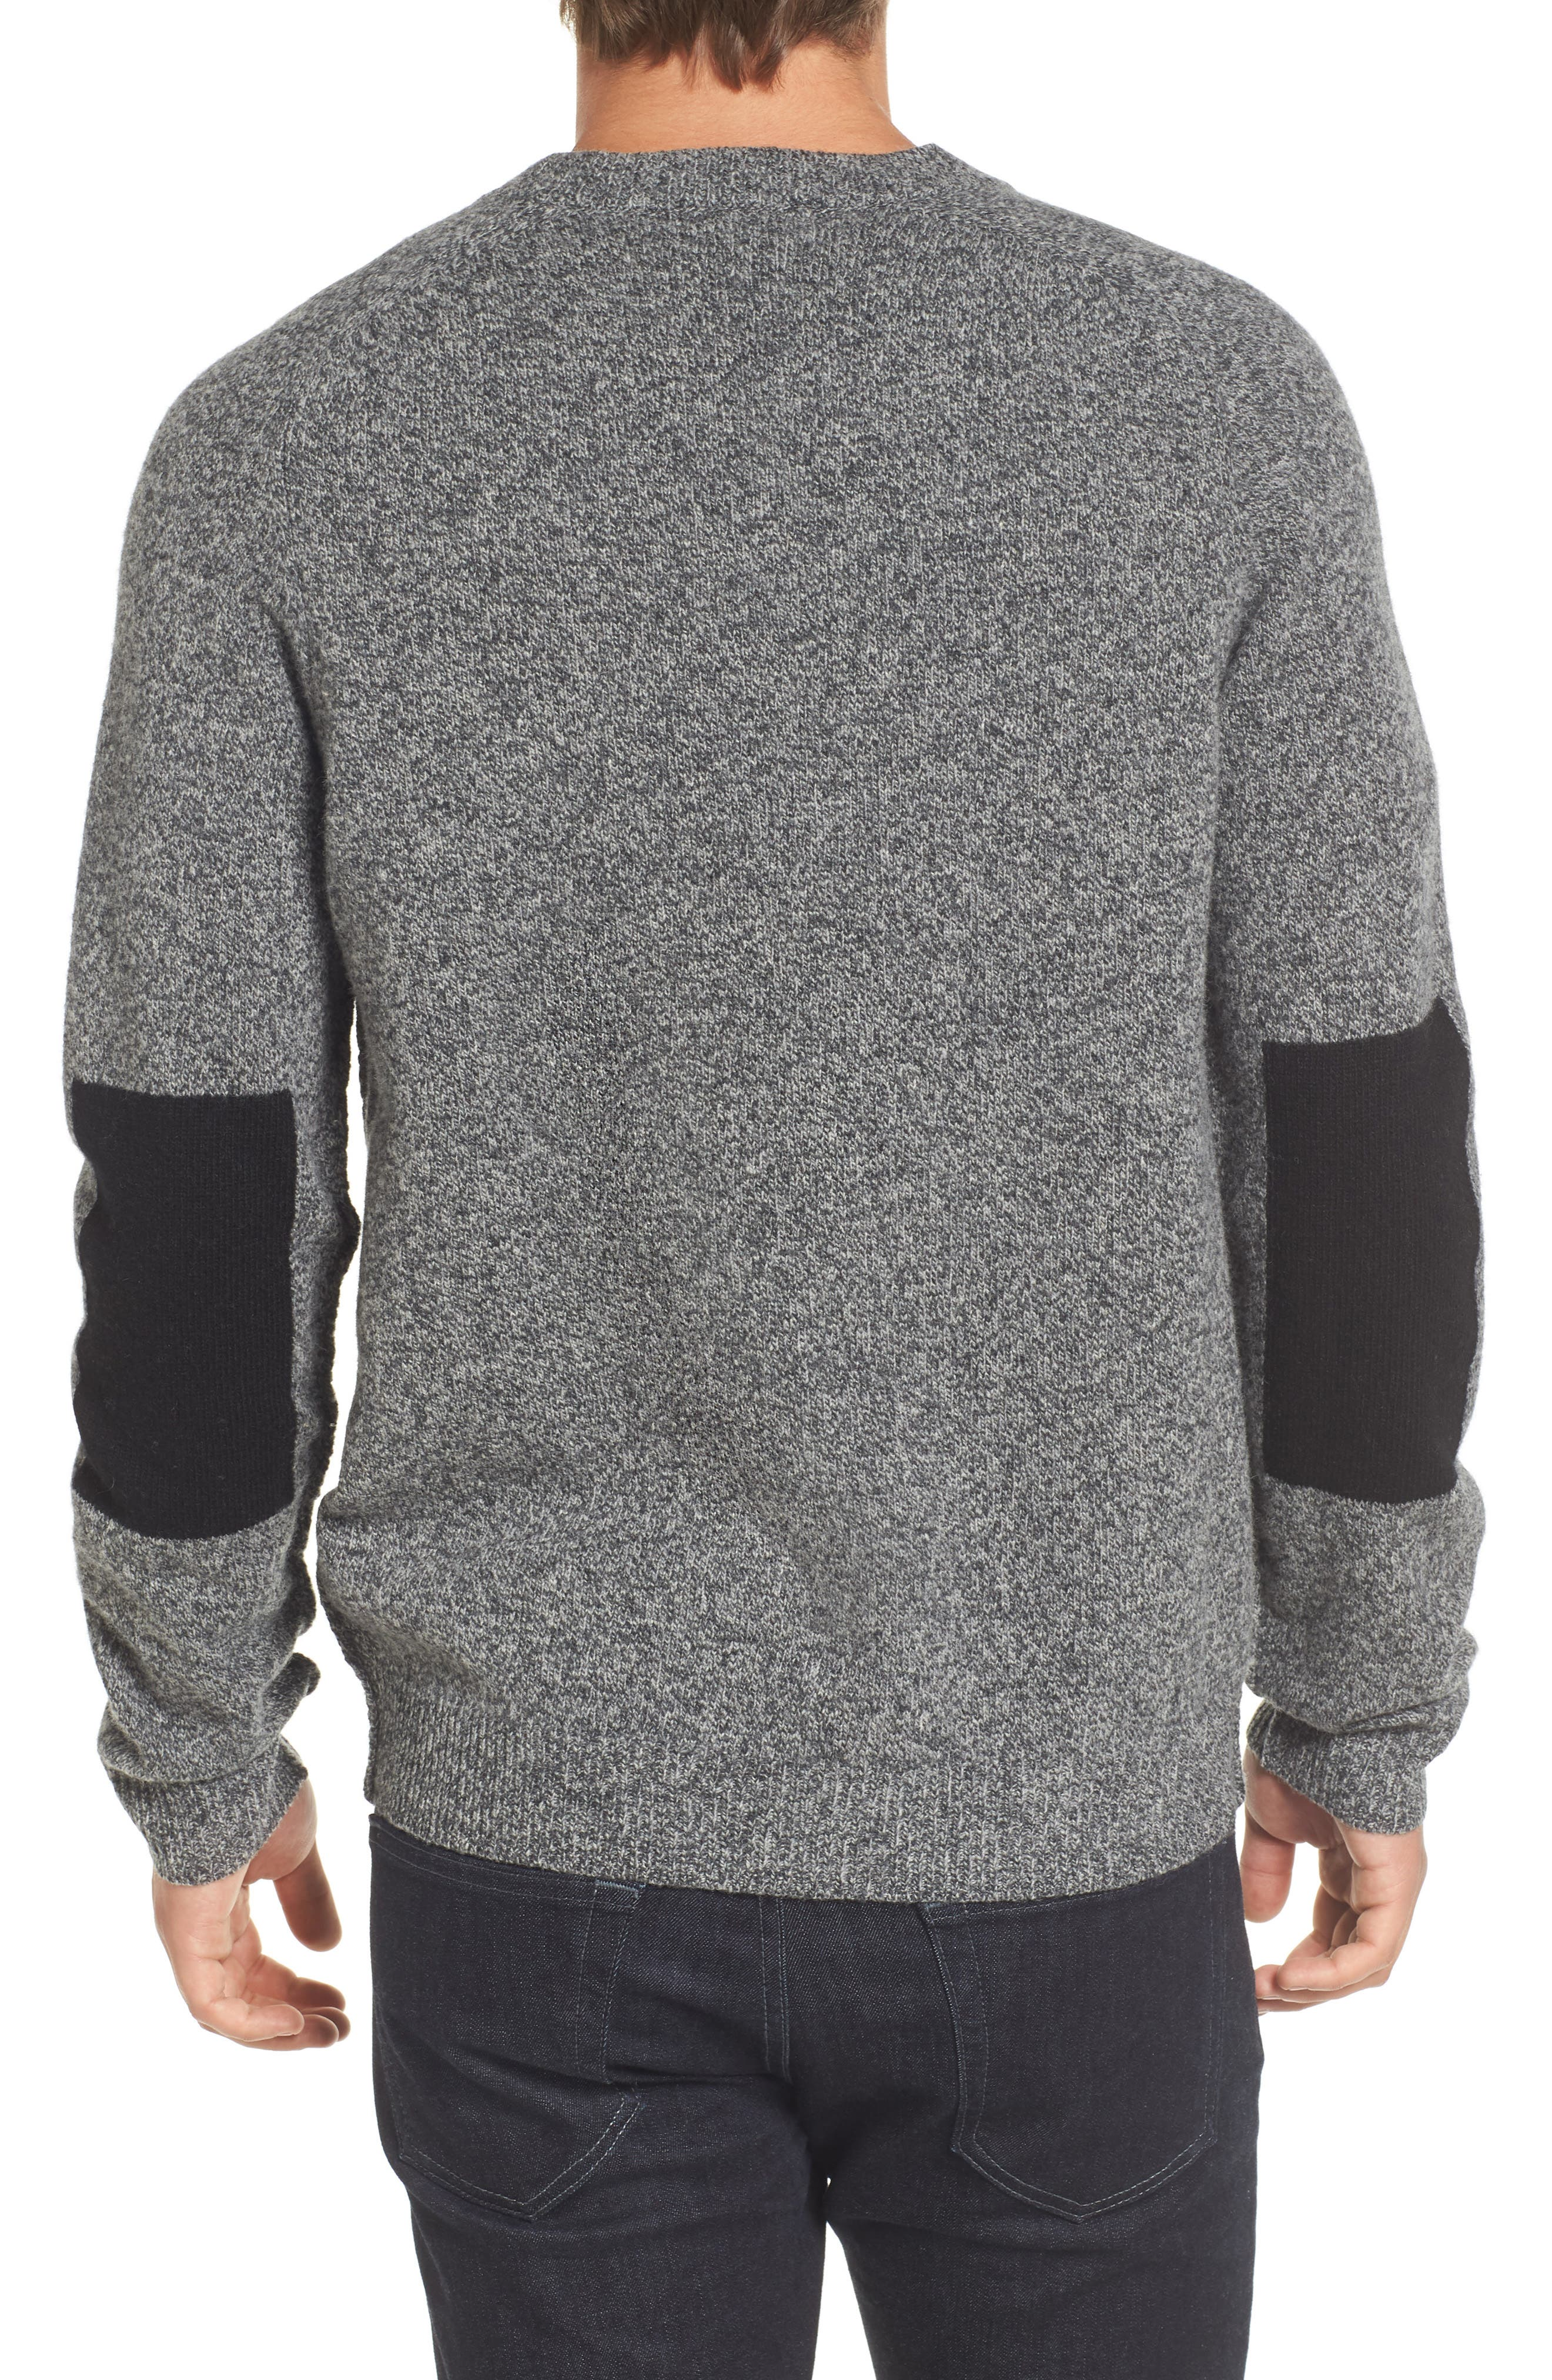 Elbow Patch Sweater,                             Alternate thumbnail 2, color,                             Charcoal Twist/ Black